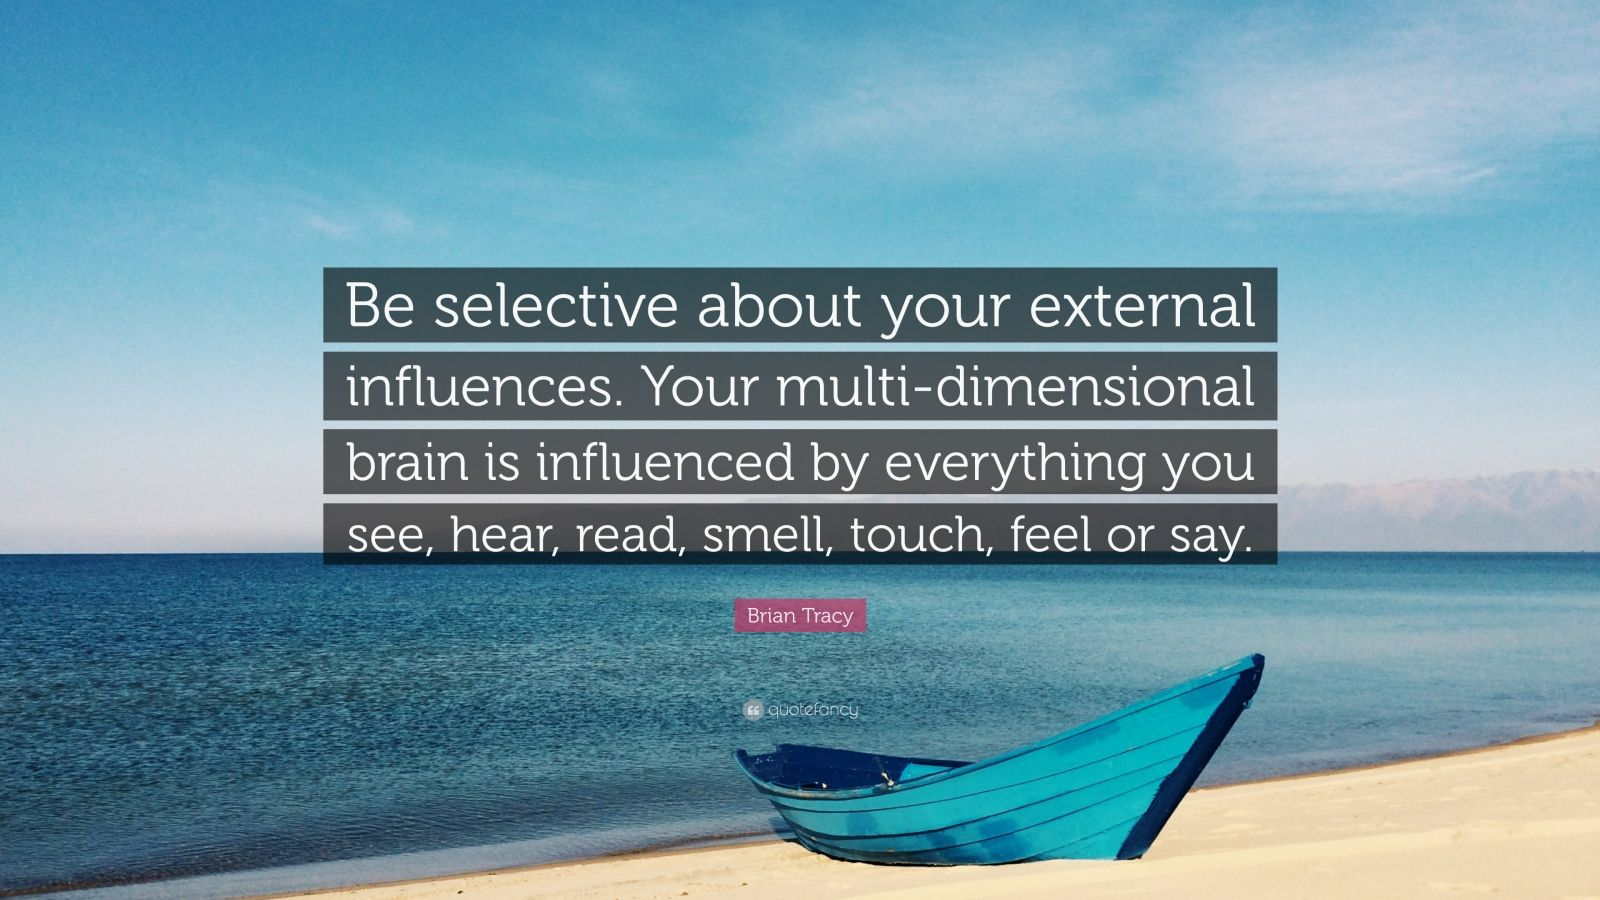 """Brian Tracy Quote: """"Be selective about your external influences. Your multi-dimensional brain is influenced by everything you see, hear, read, smell, touch, feel or say."""""""